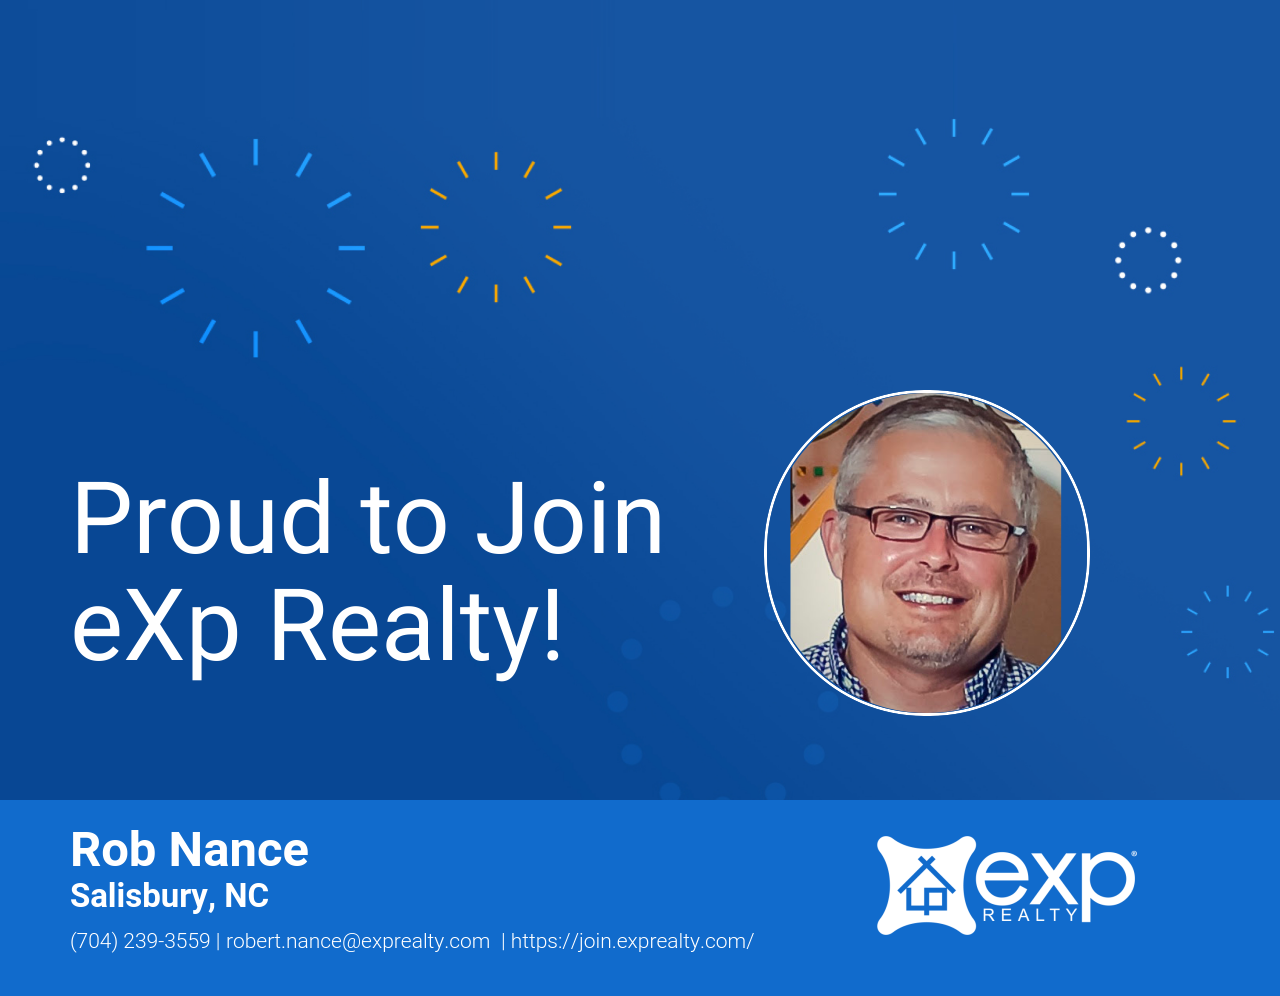 eXp Realty Welcomes Rob Nance!